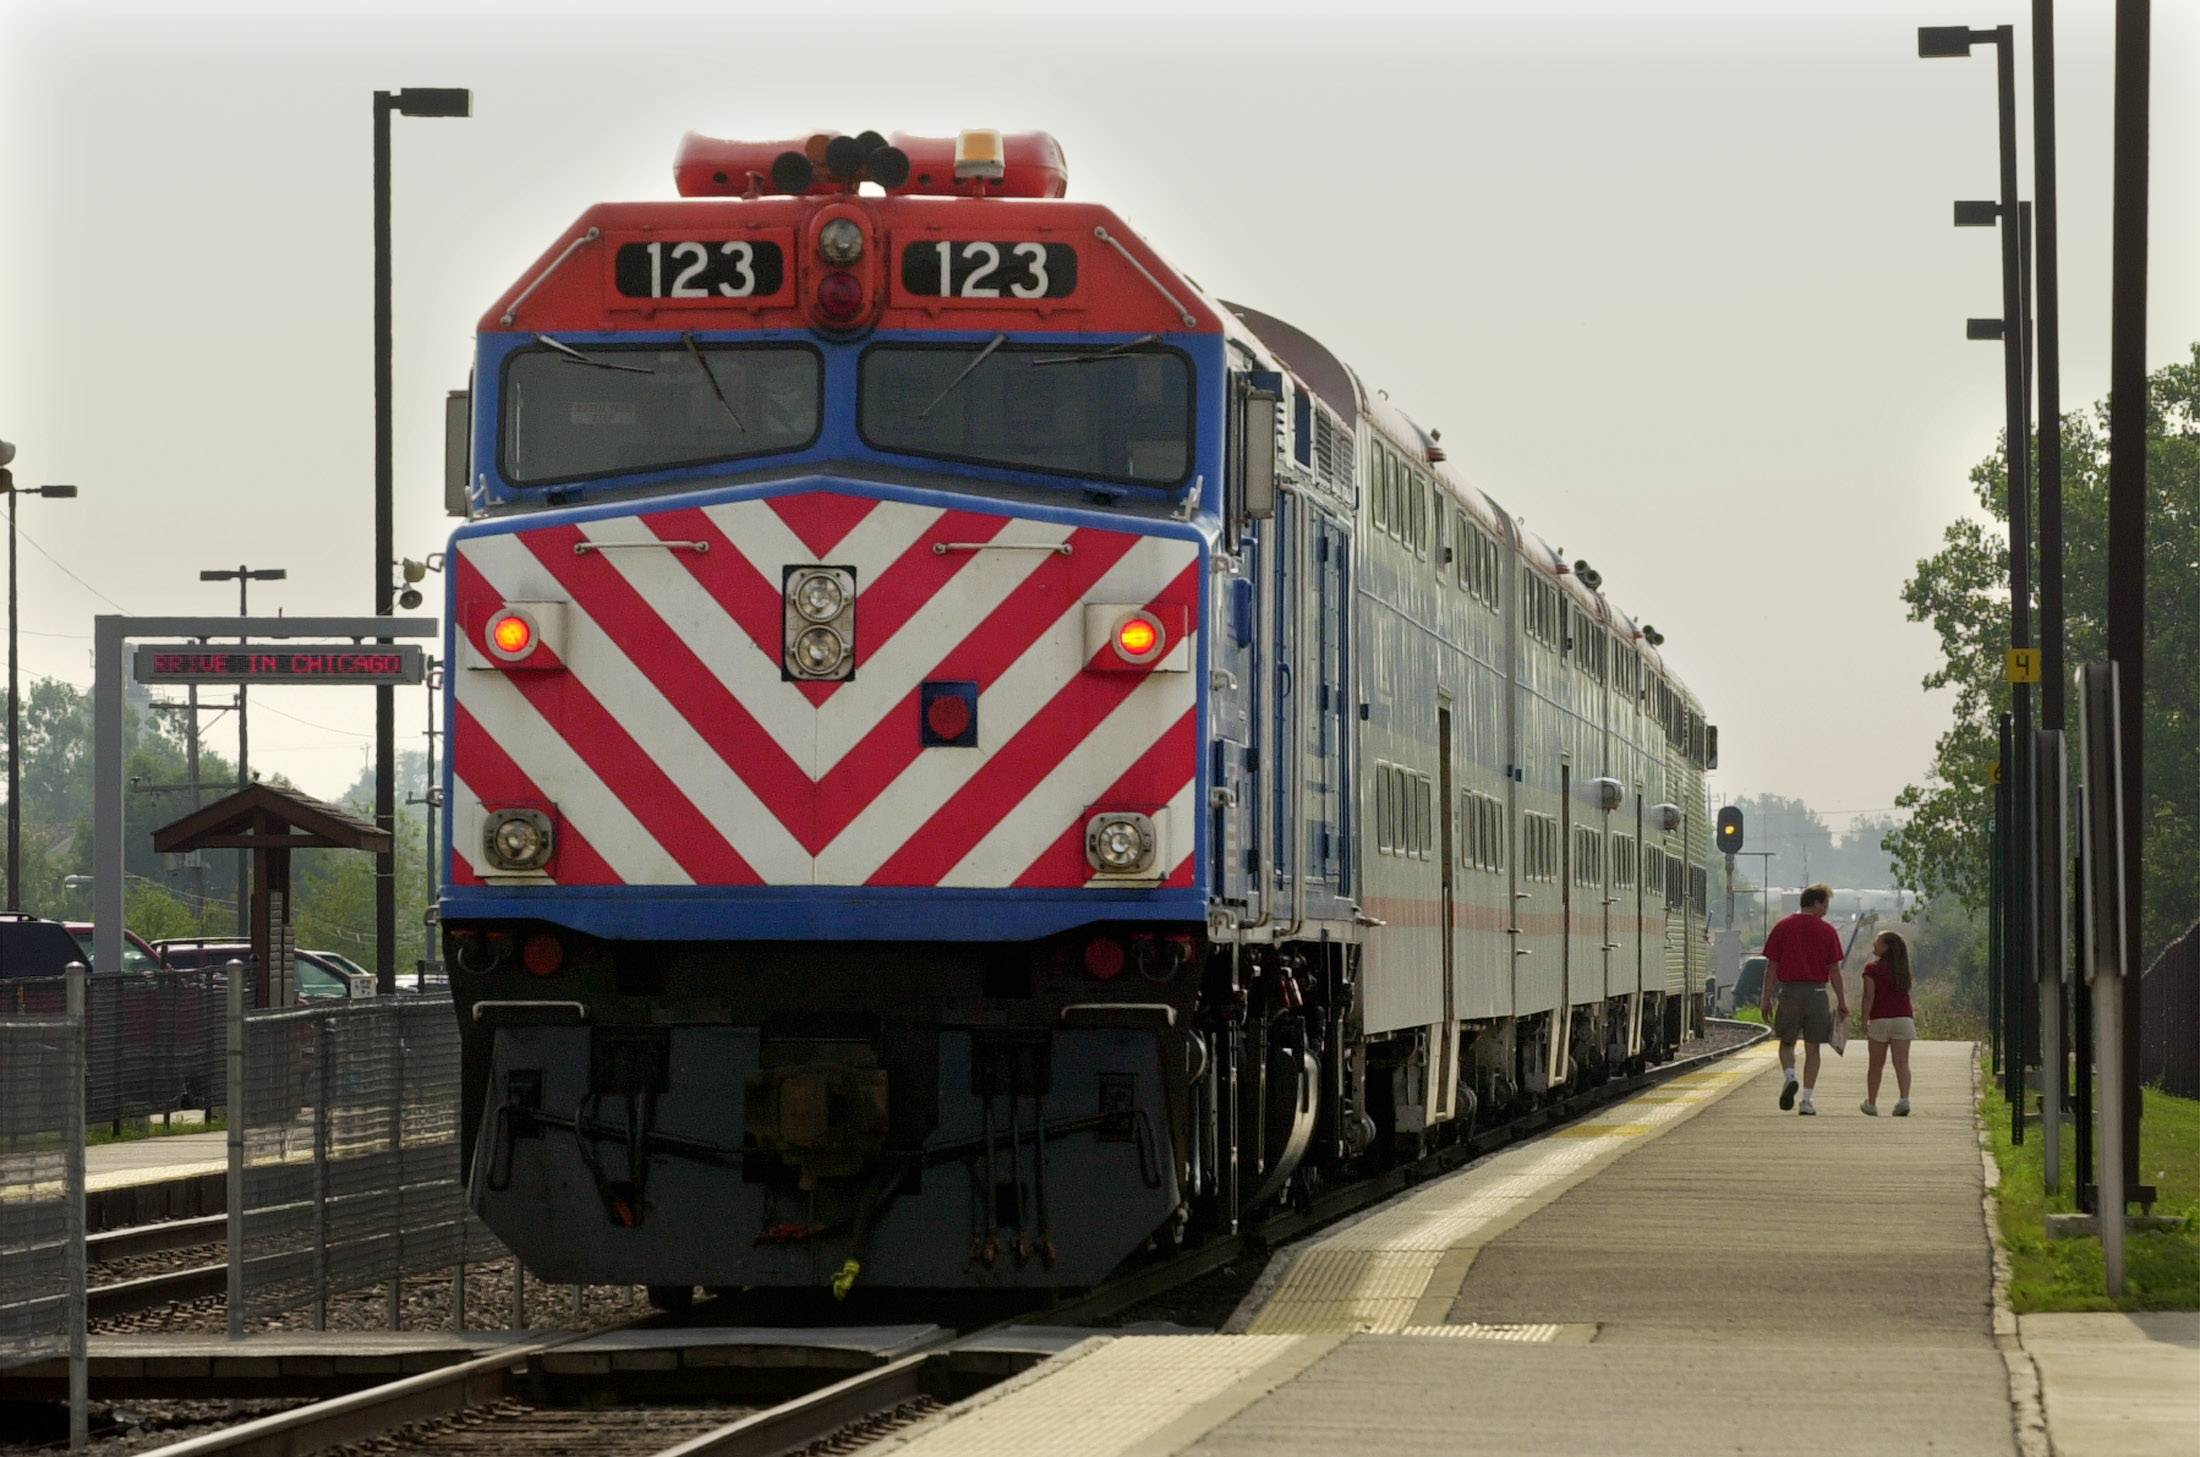 Metra is scaling back plans to replace aged locomotives and rail cars.